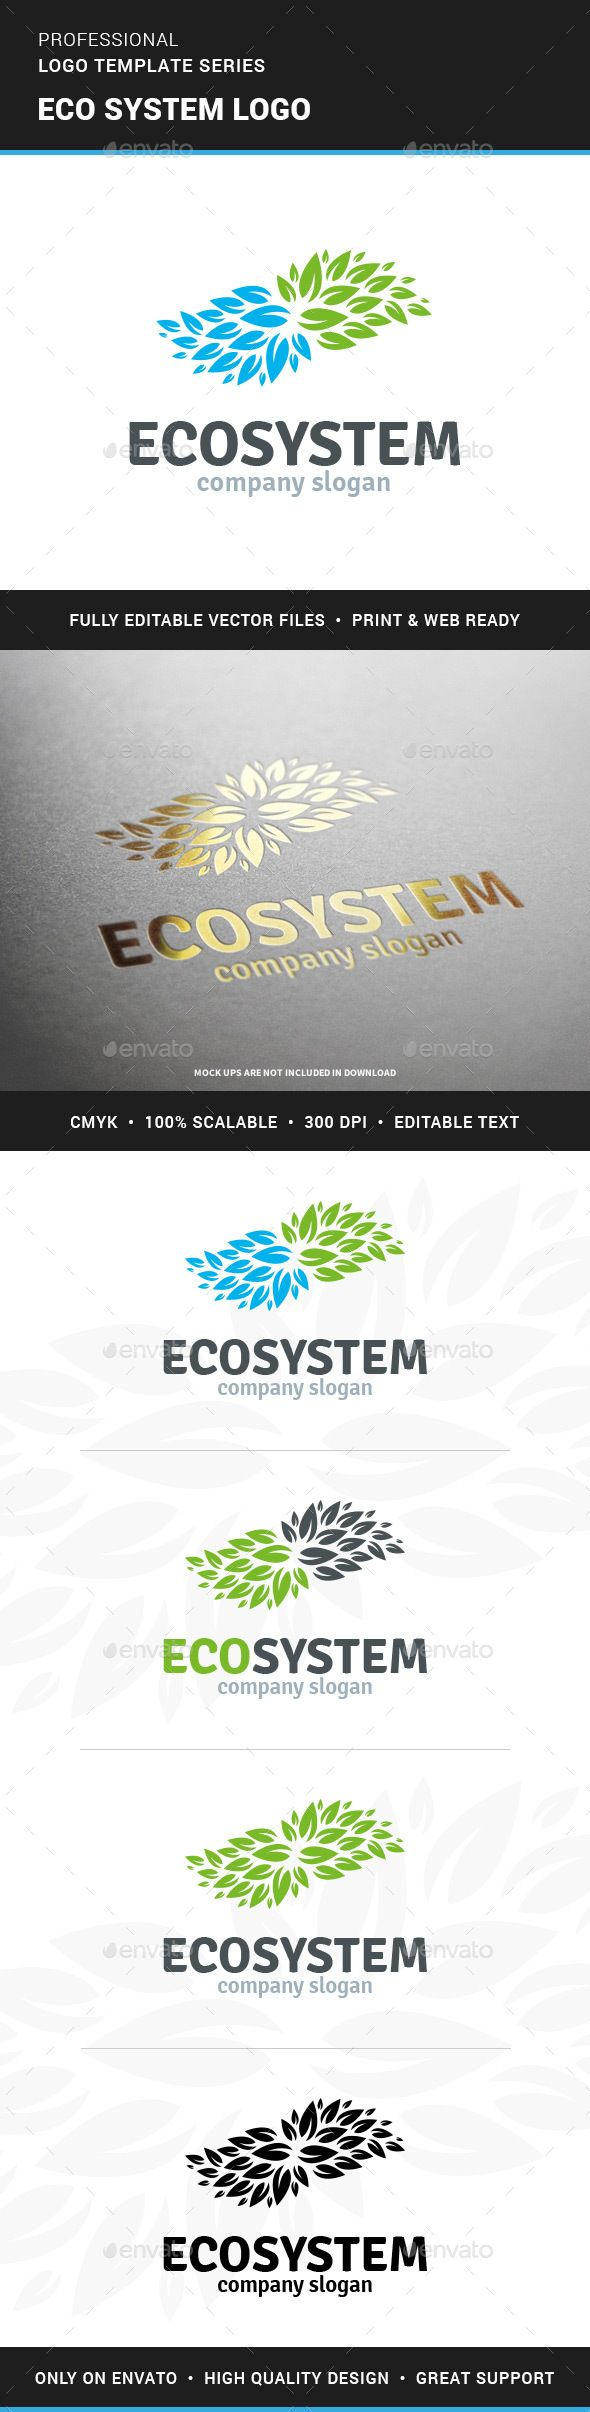 Eco System Logo Template — Vector EPS #earth #salon • Available here → https://graphicriver.net/item/eco-system-logo-template/13066388?ref=pxcr